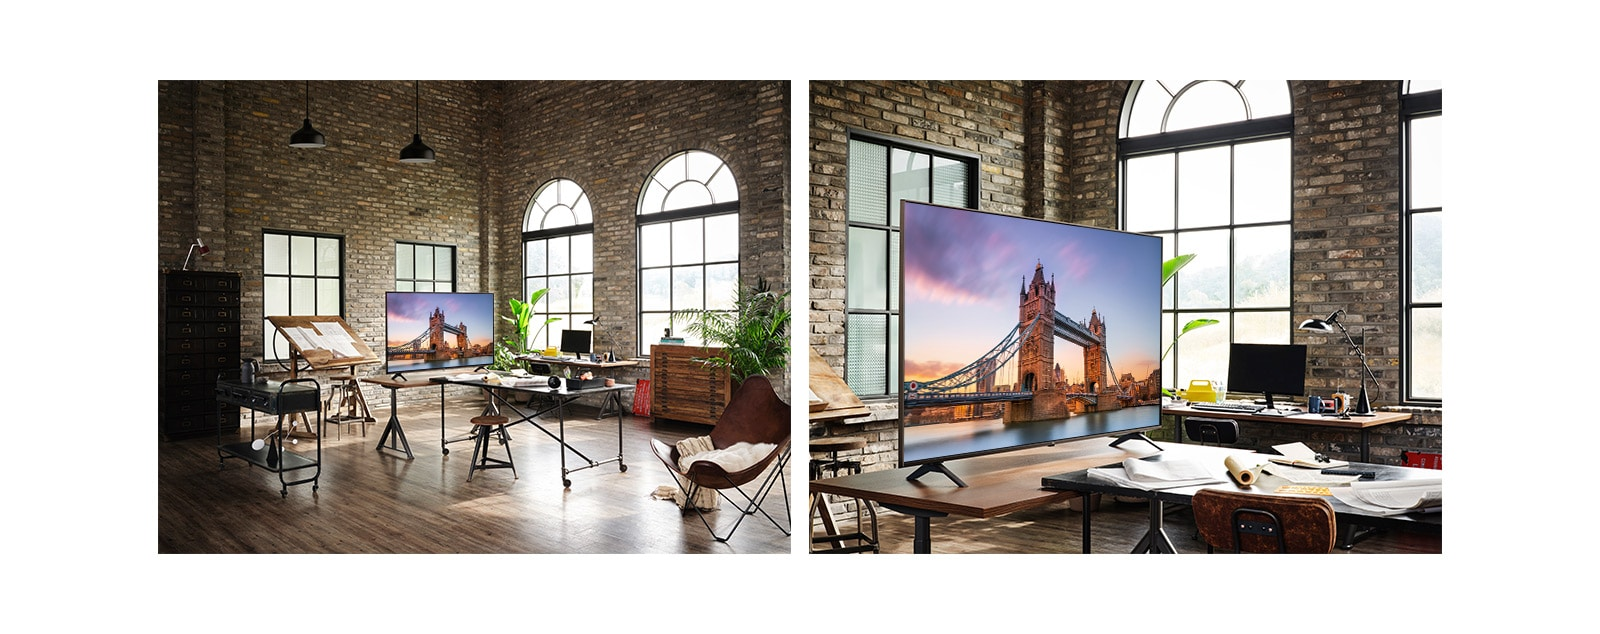 A TV displaying a picture of London Bridge is in an antique workroom. A close up of a TV displaying a picture of London Bridge is on a table in an antique workroom.